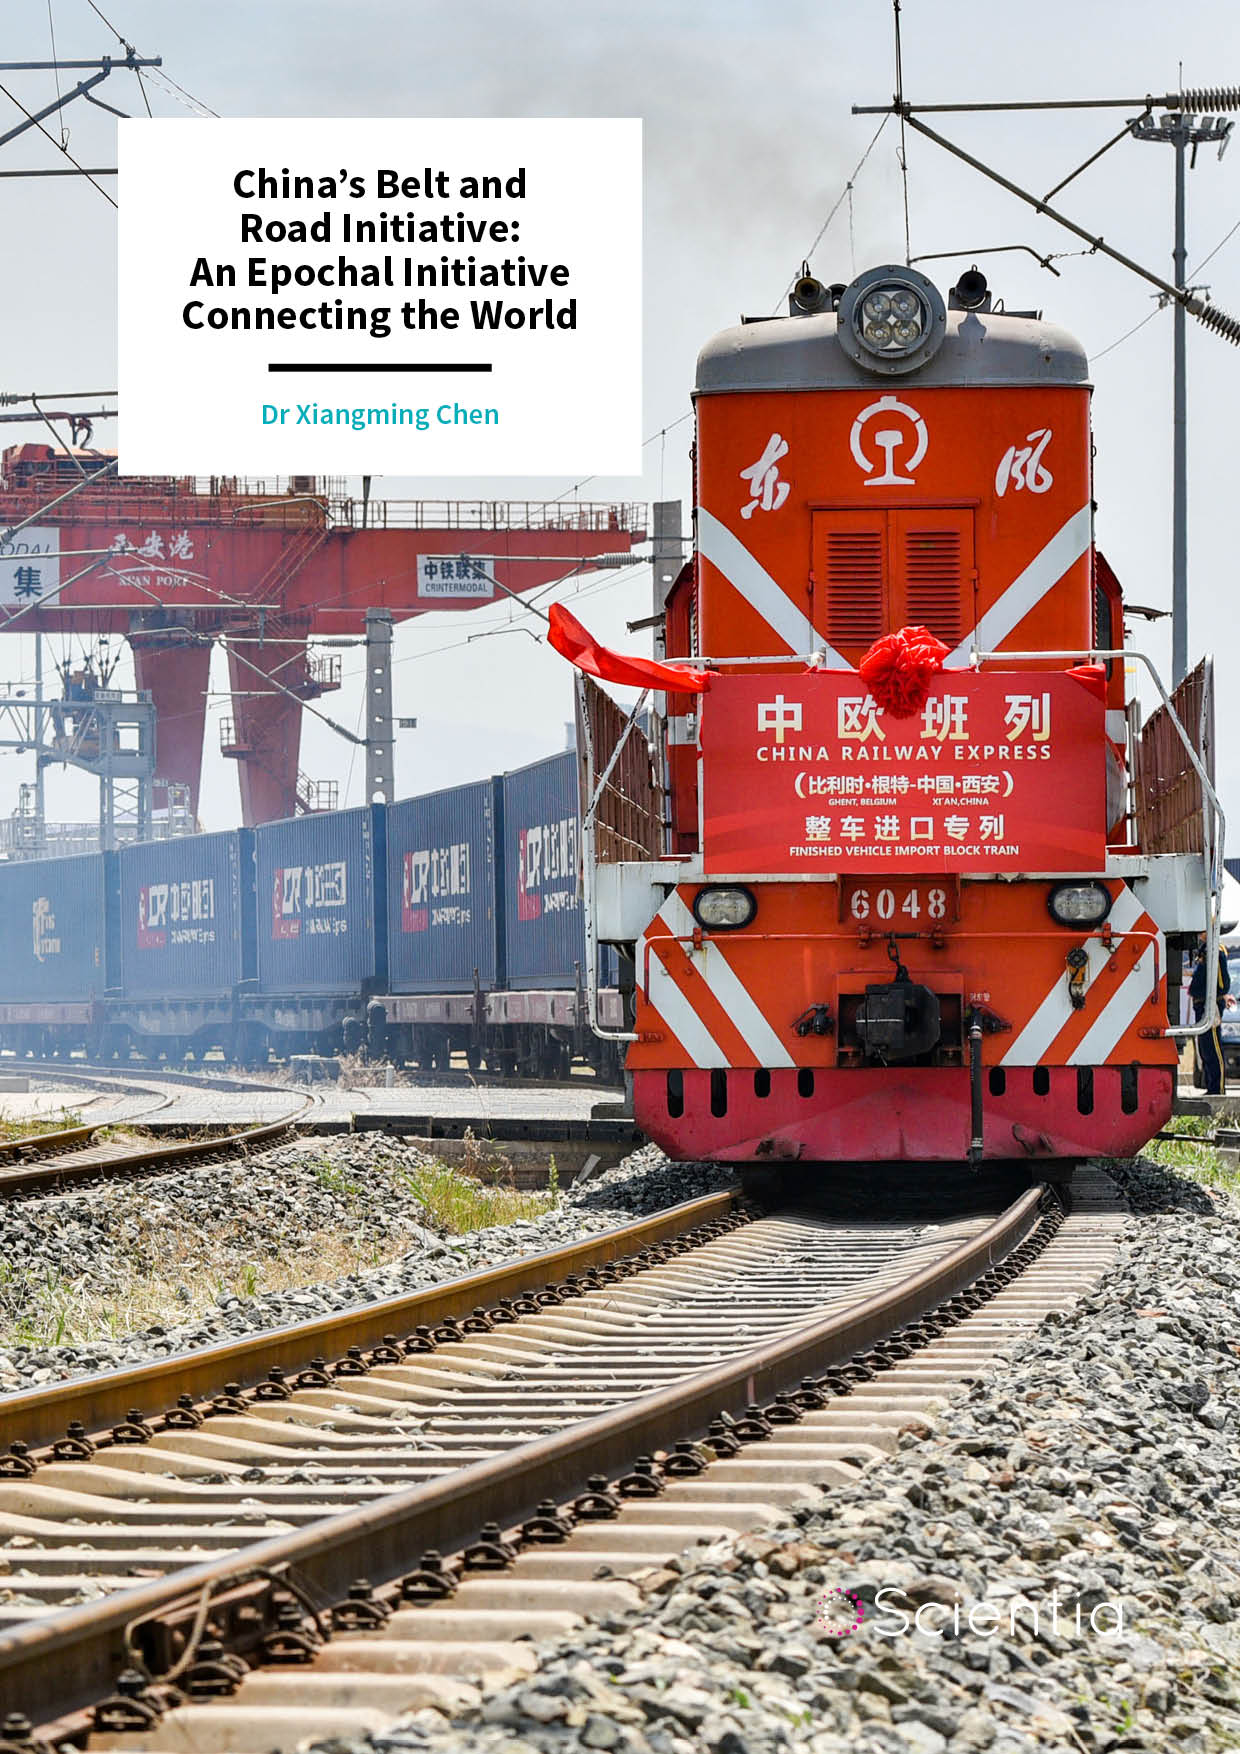 Professor Xiangming Chen – China's Belt and Road Initiative: An Epochal Initiative Connecting the World